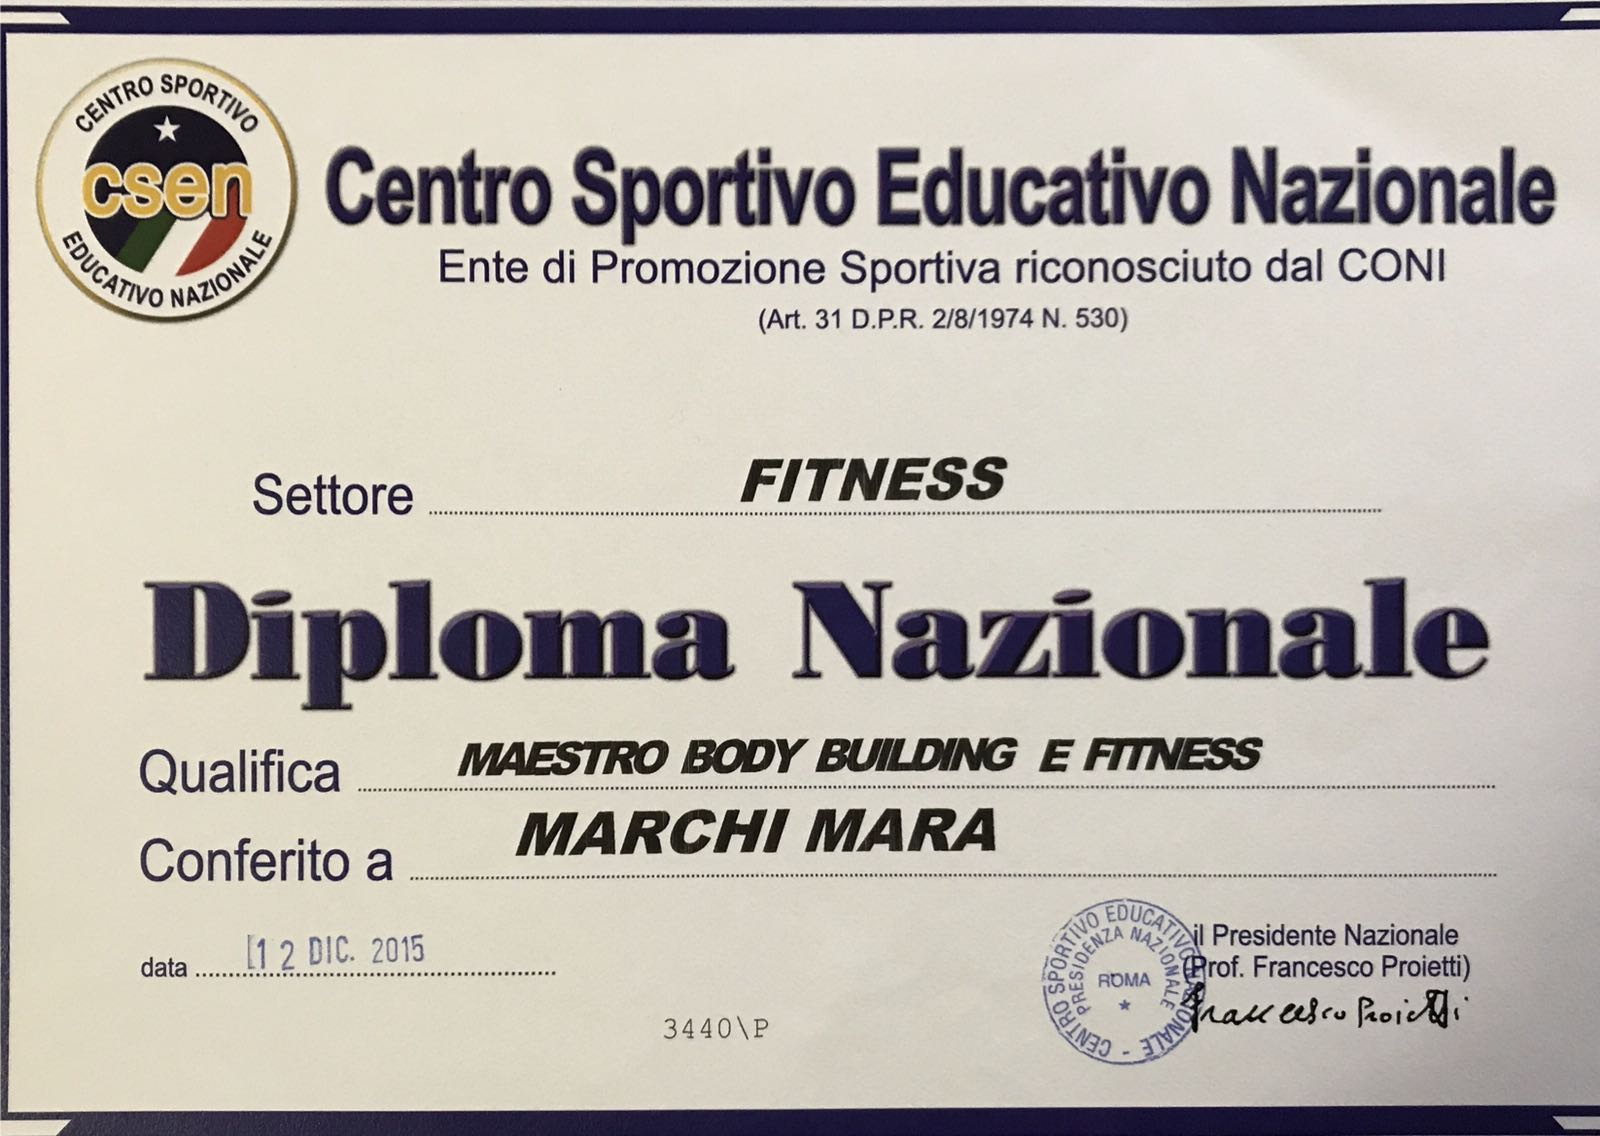 Maestro di Body Building e Fitness